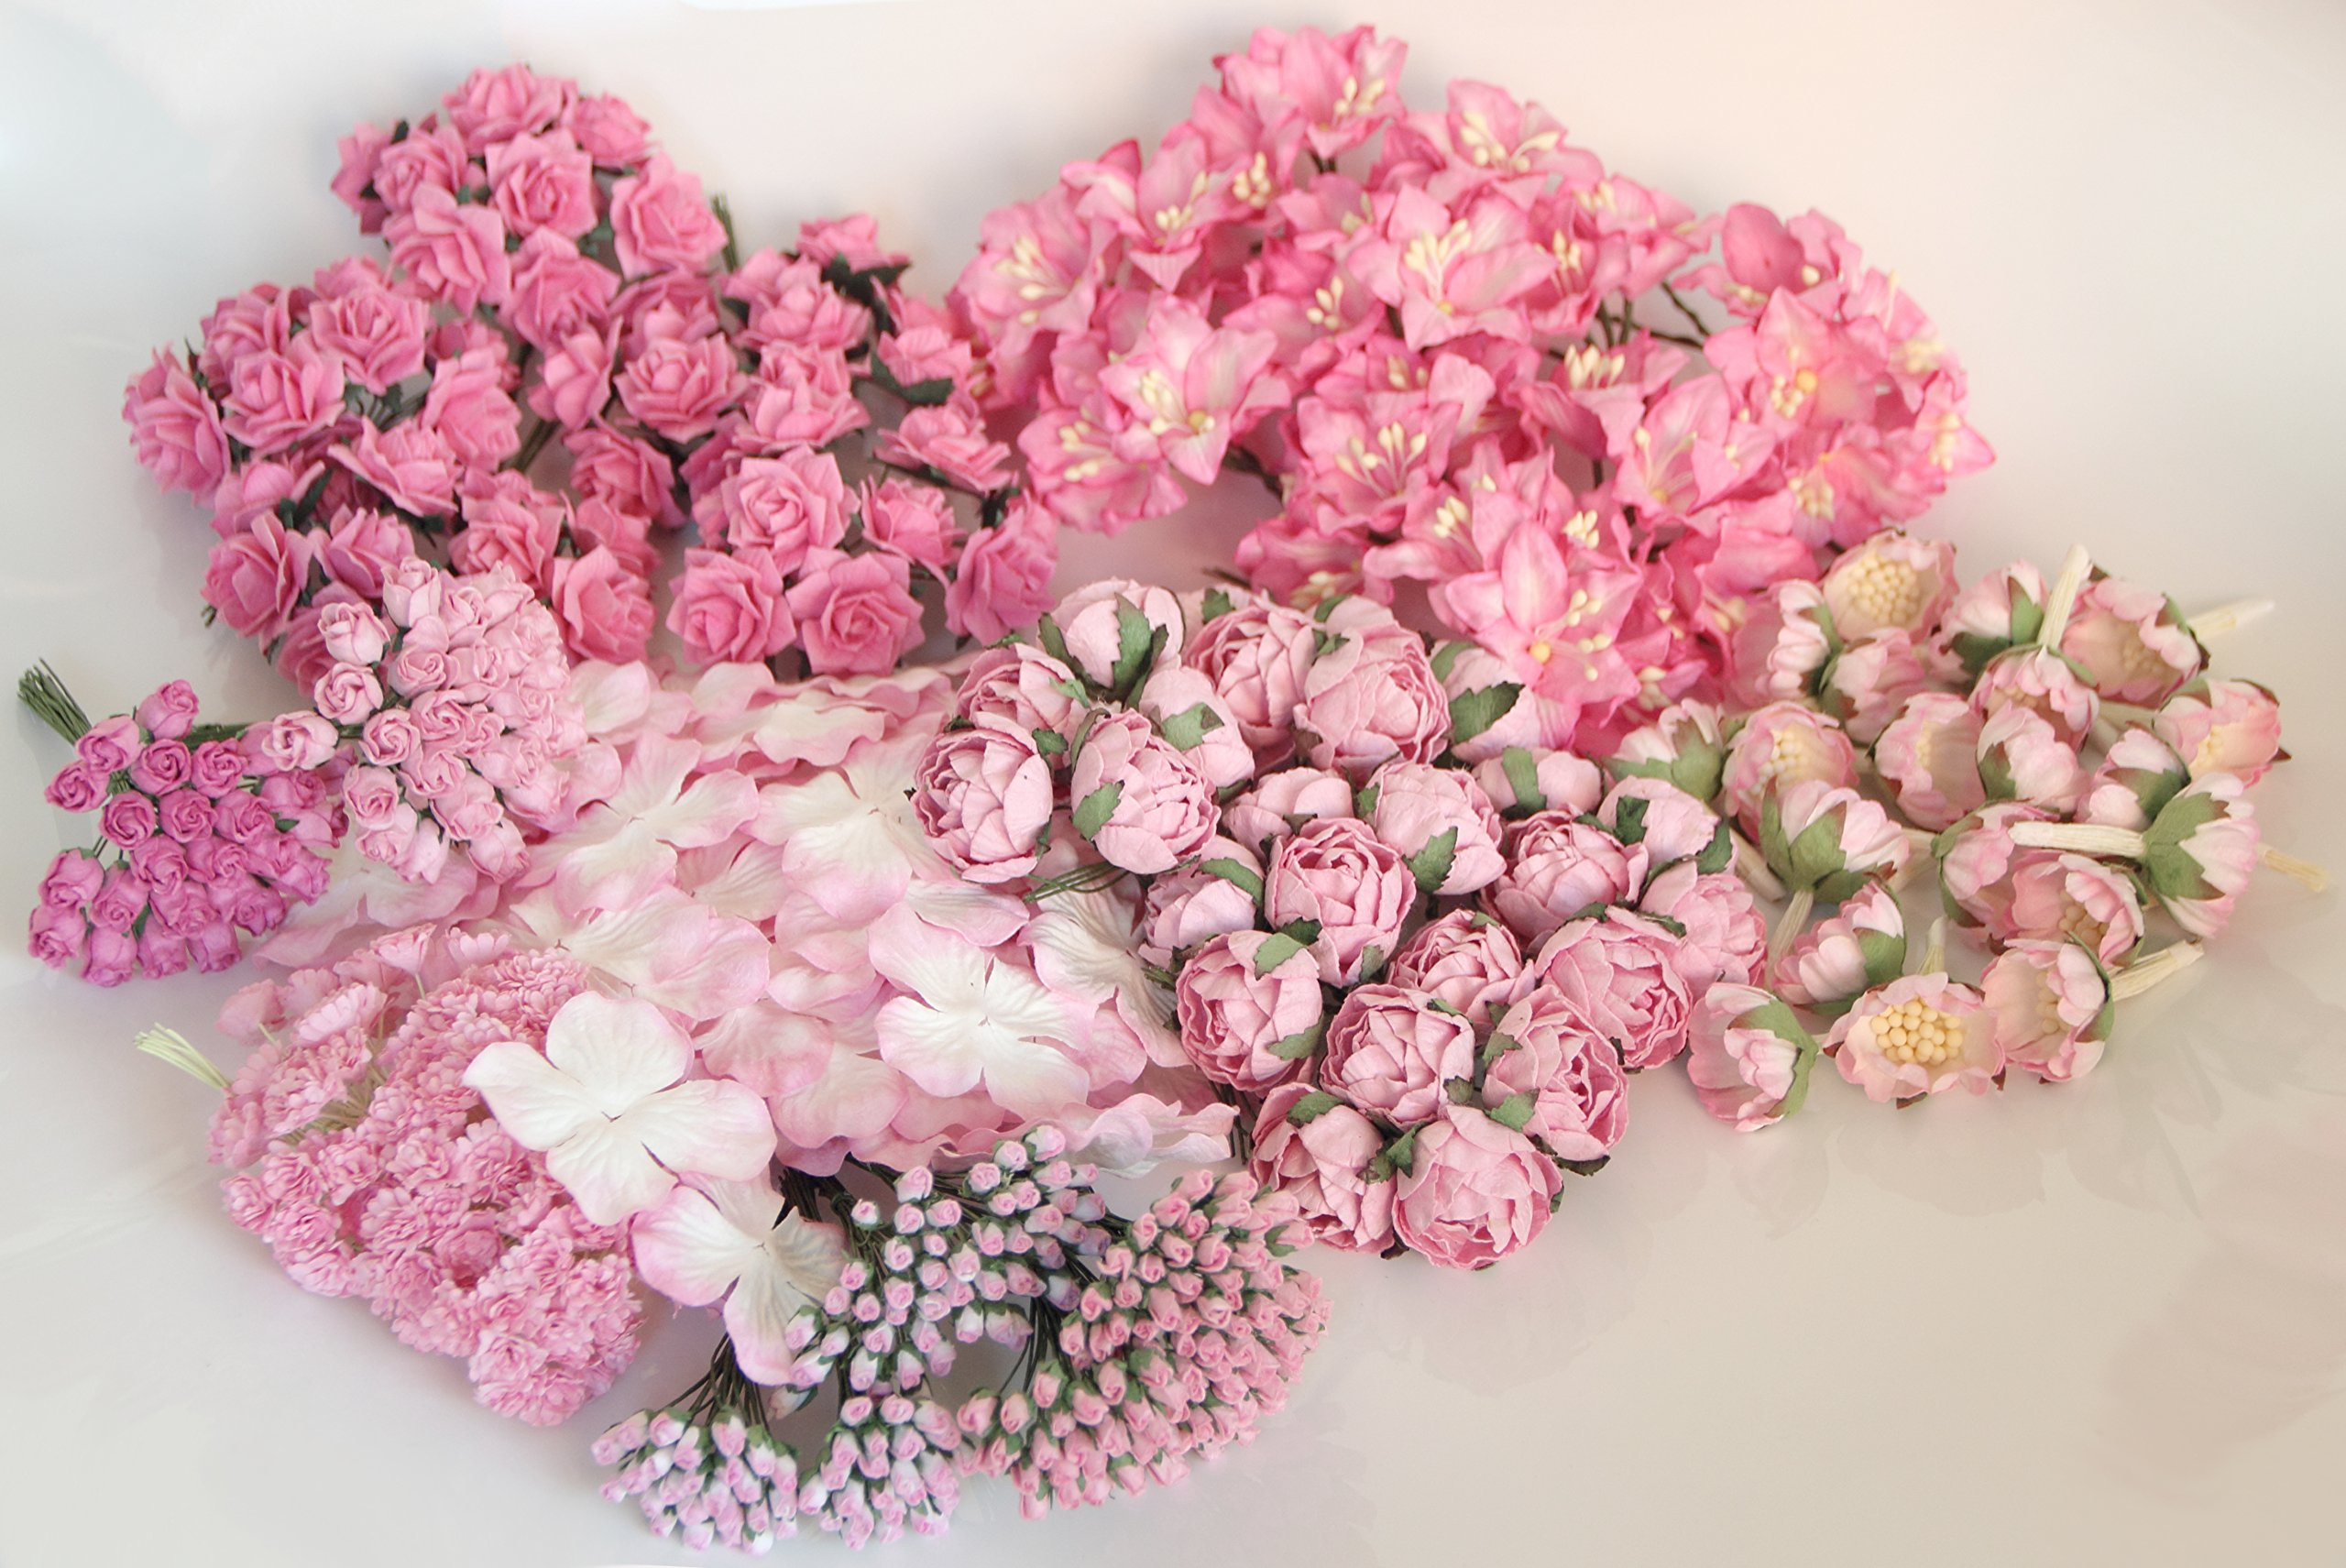 ScrapFlowers Big Value set of Pink Flowers for Scrapbooking, Wedding and Baby Shower Decorations, favours DIY. Hydrangeas, wild roses, gypsophilas, ranunkulus, abble blossoms, lilies. jasmin